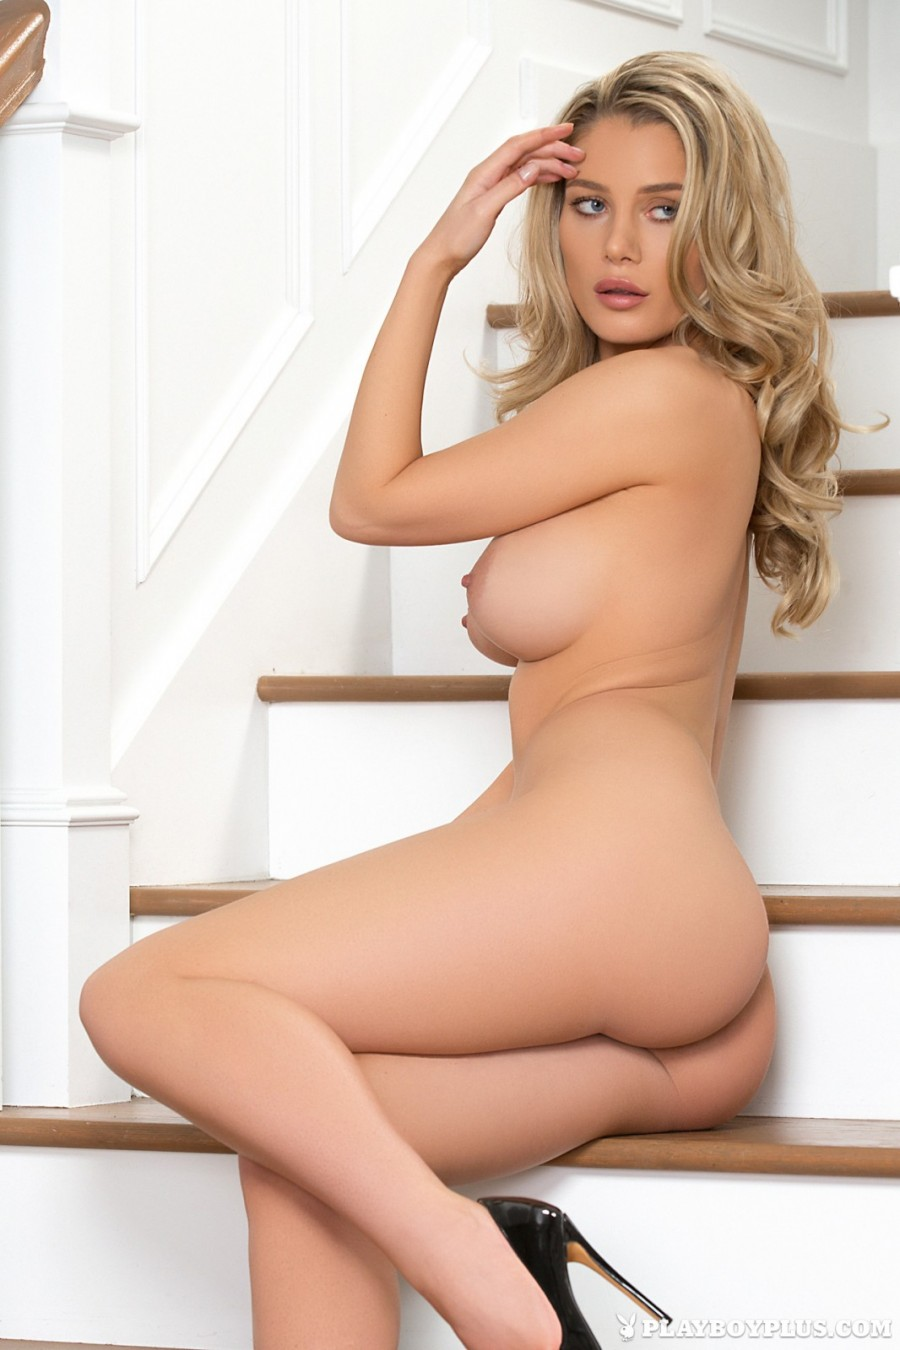 High heels on stairs mash up